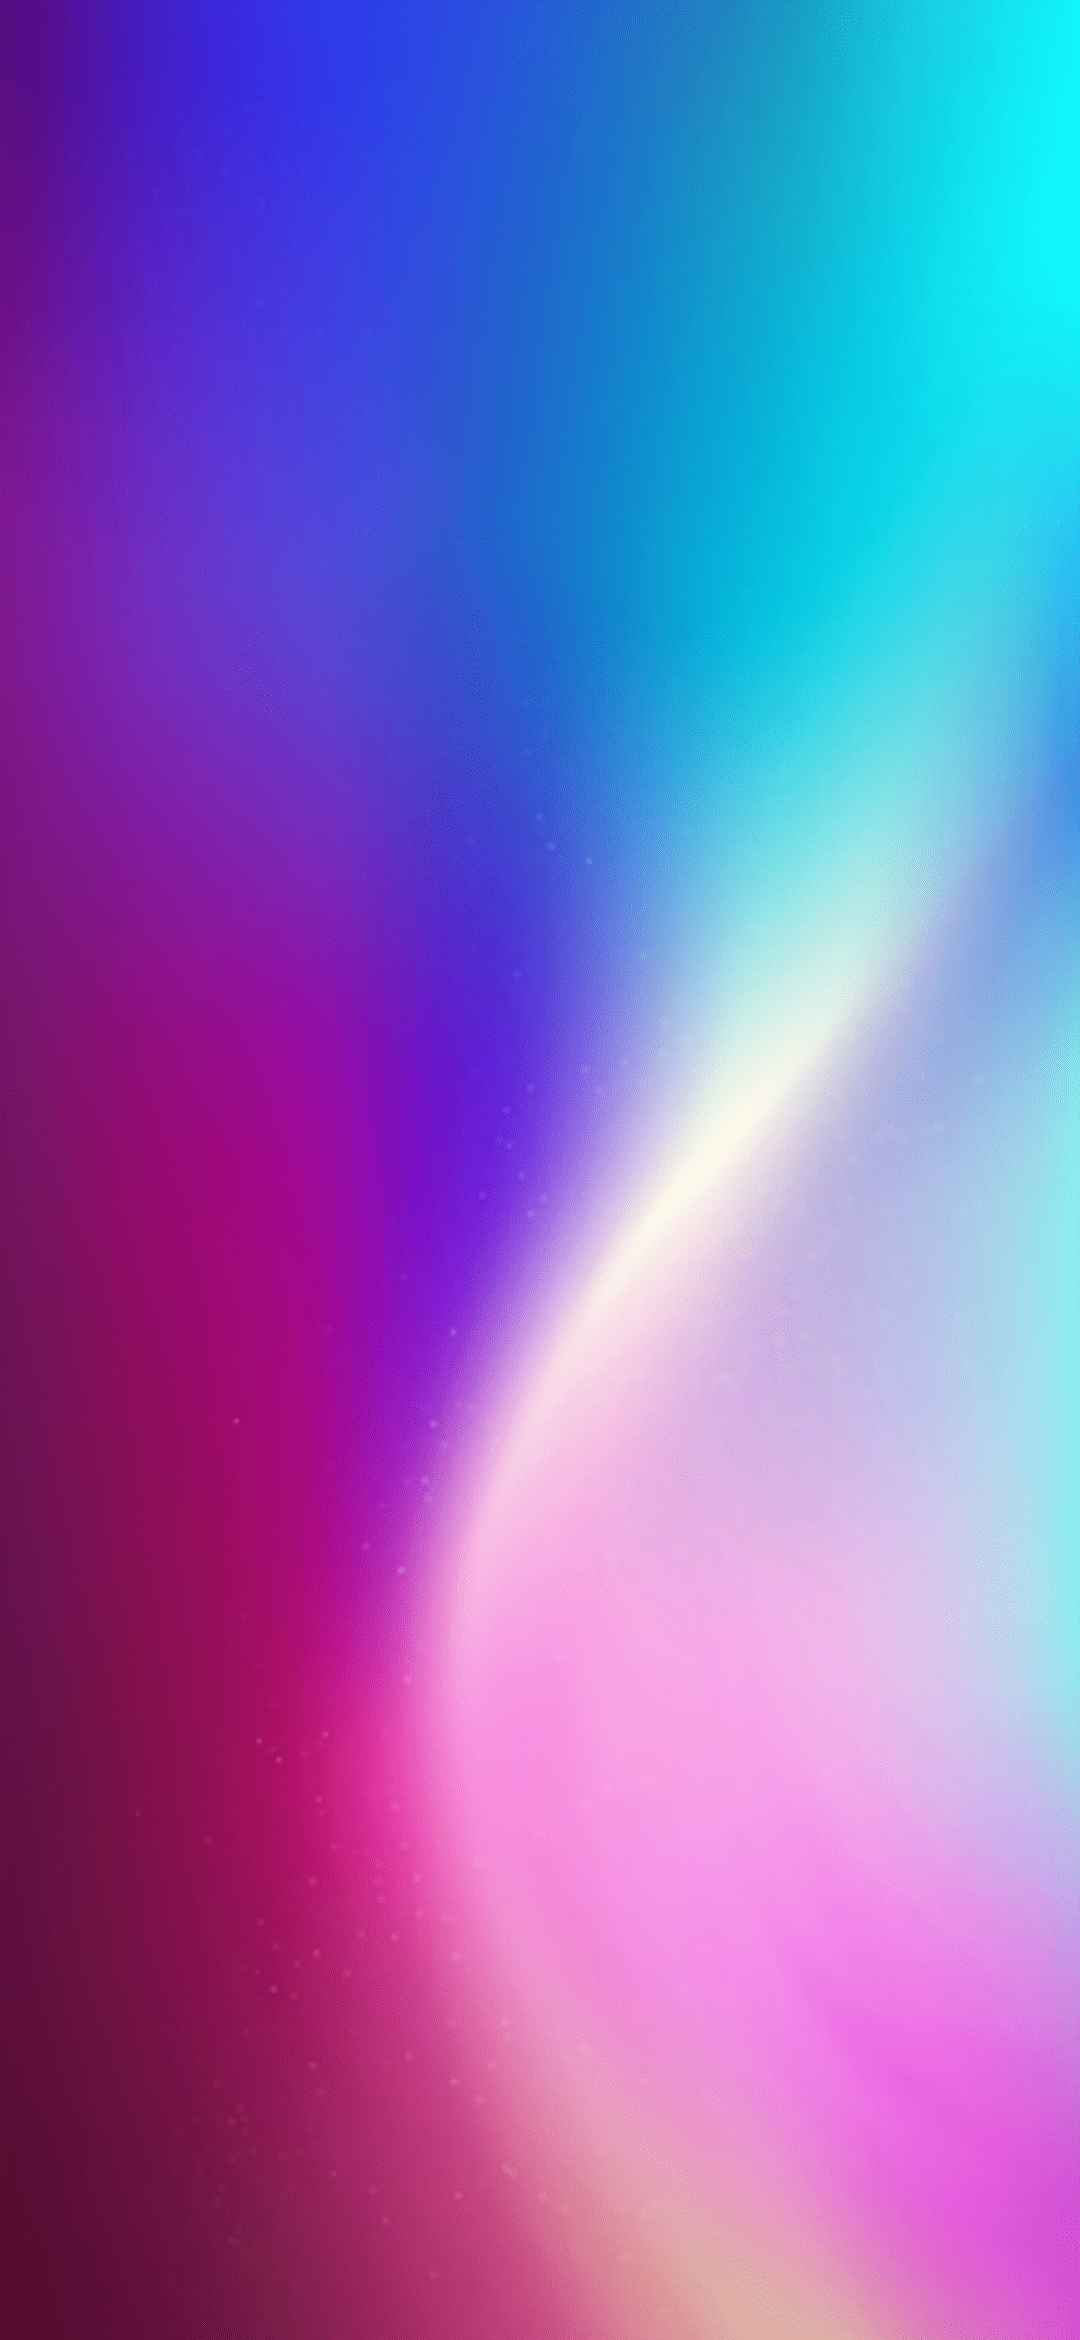 Redmi 7A Stock Wallpapers (Full HD+) - Download | DroidViews